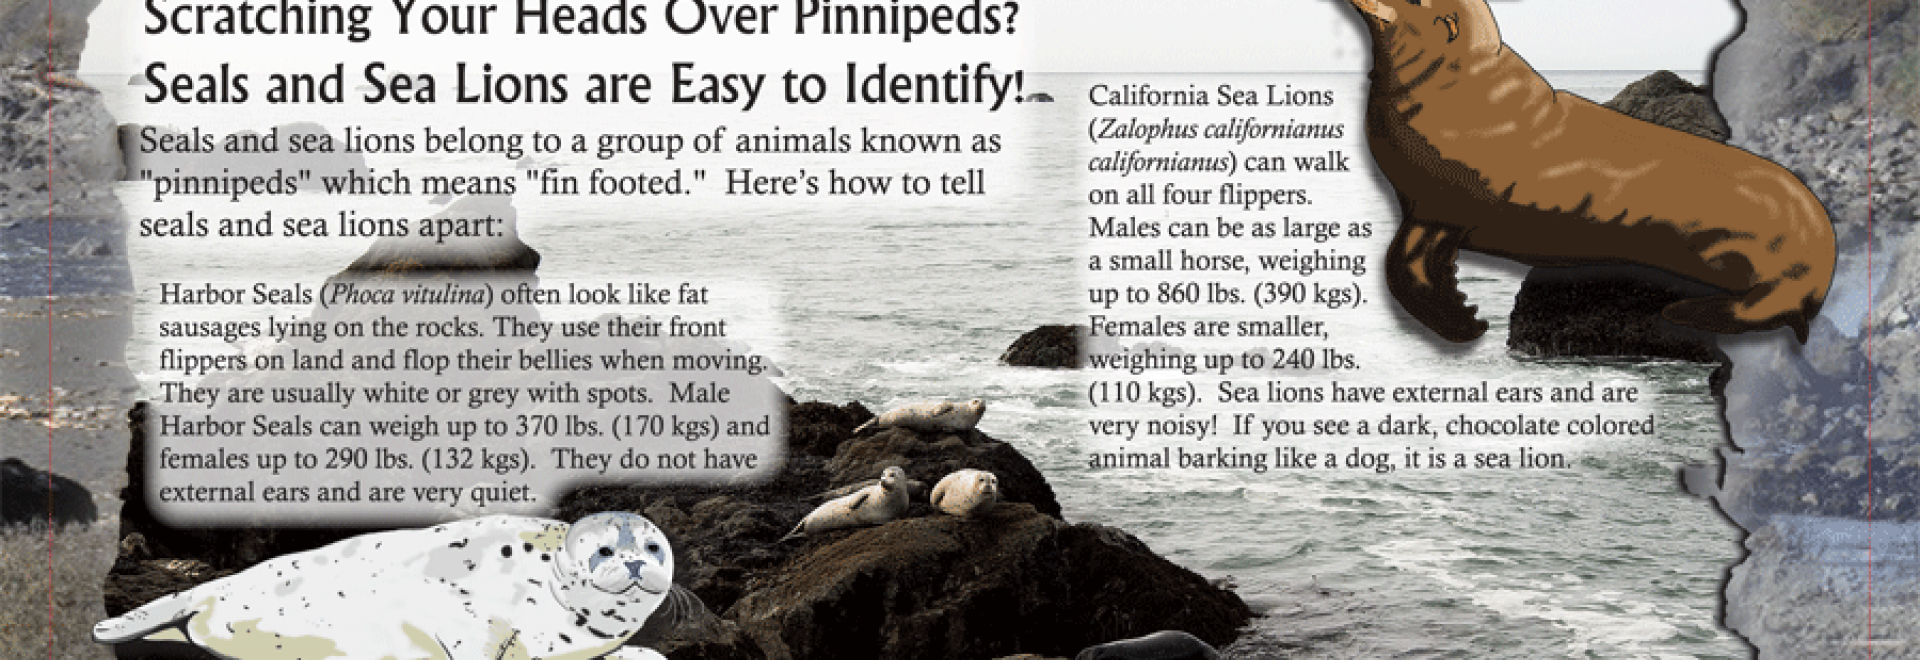 Seal Sea Lion sign